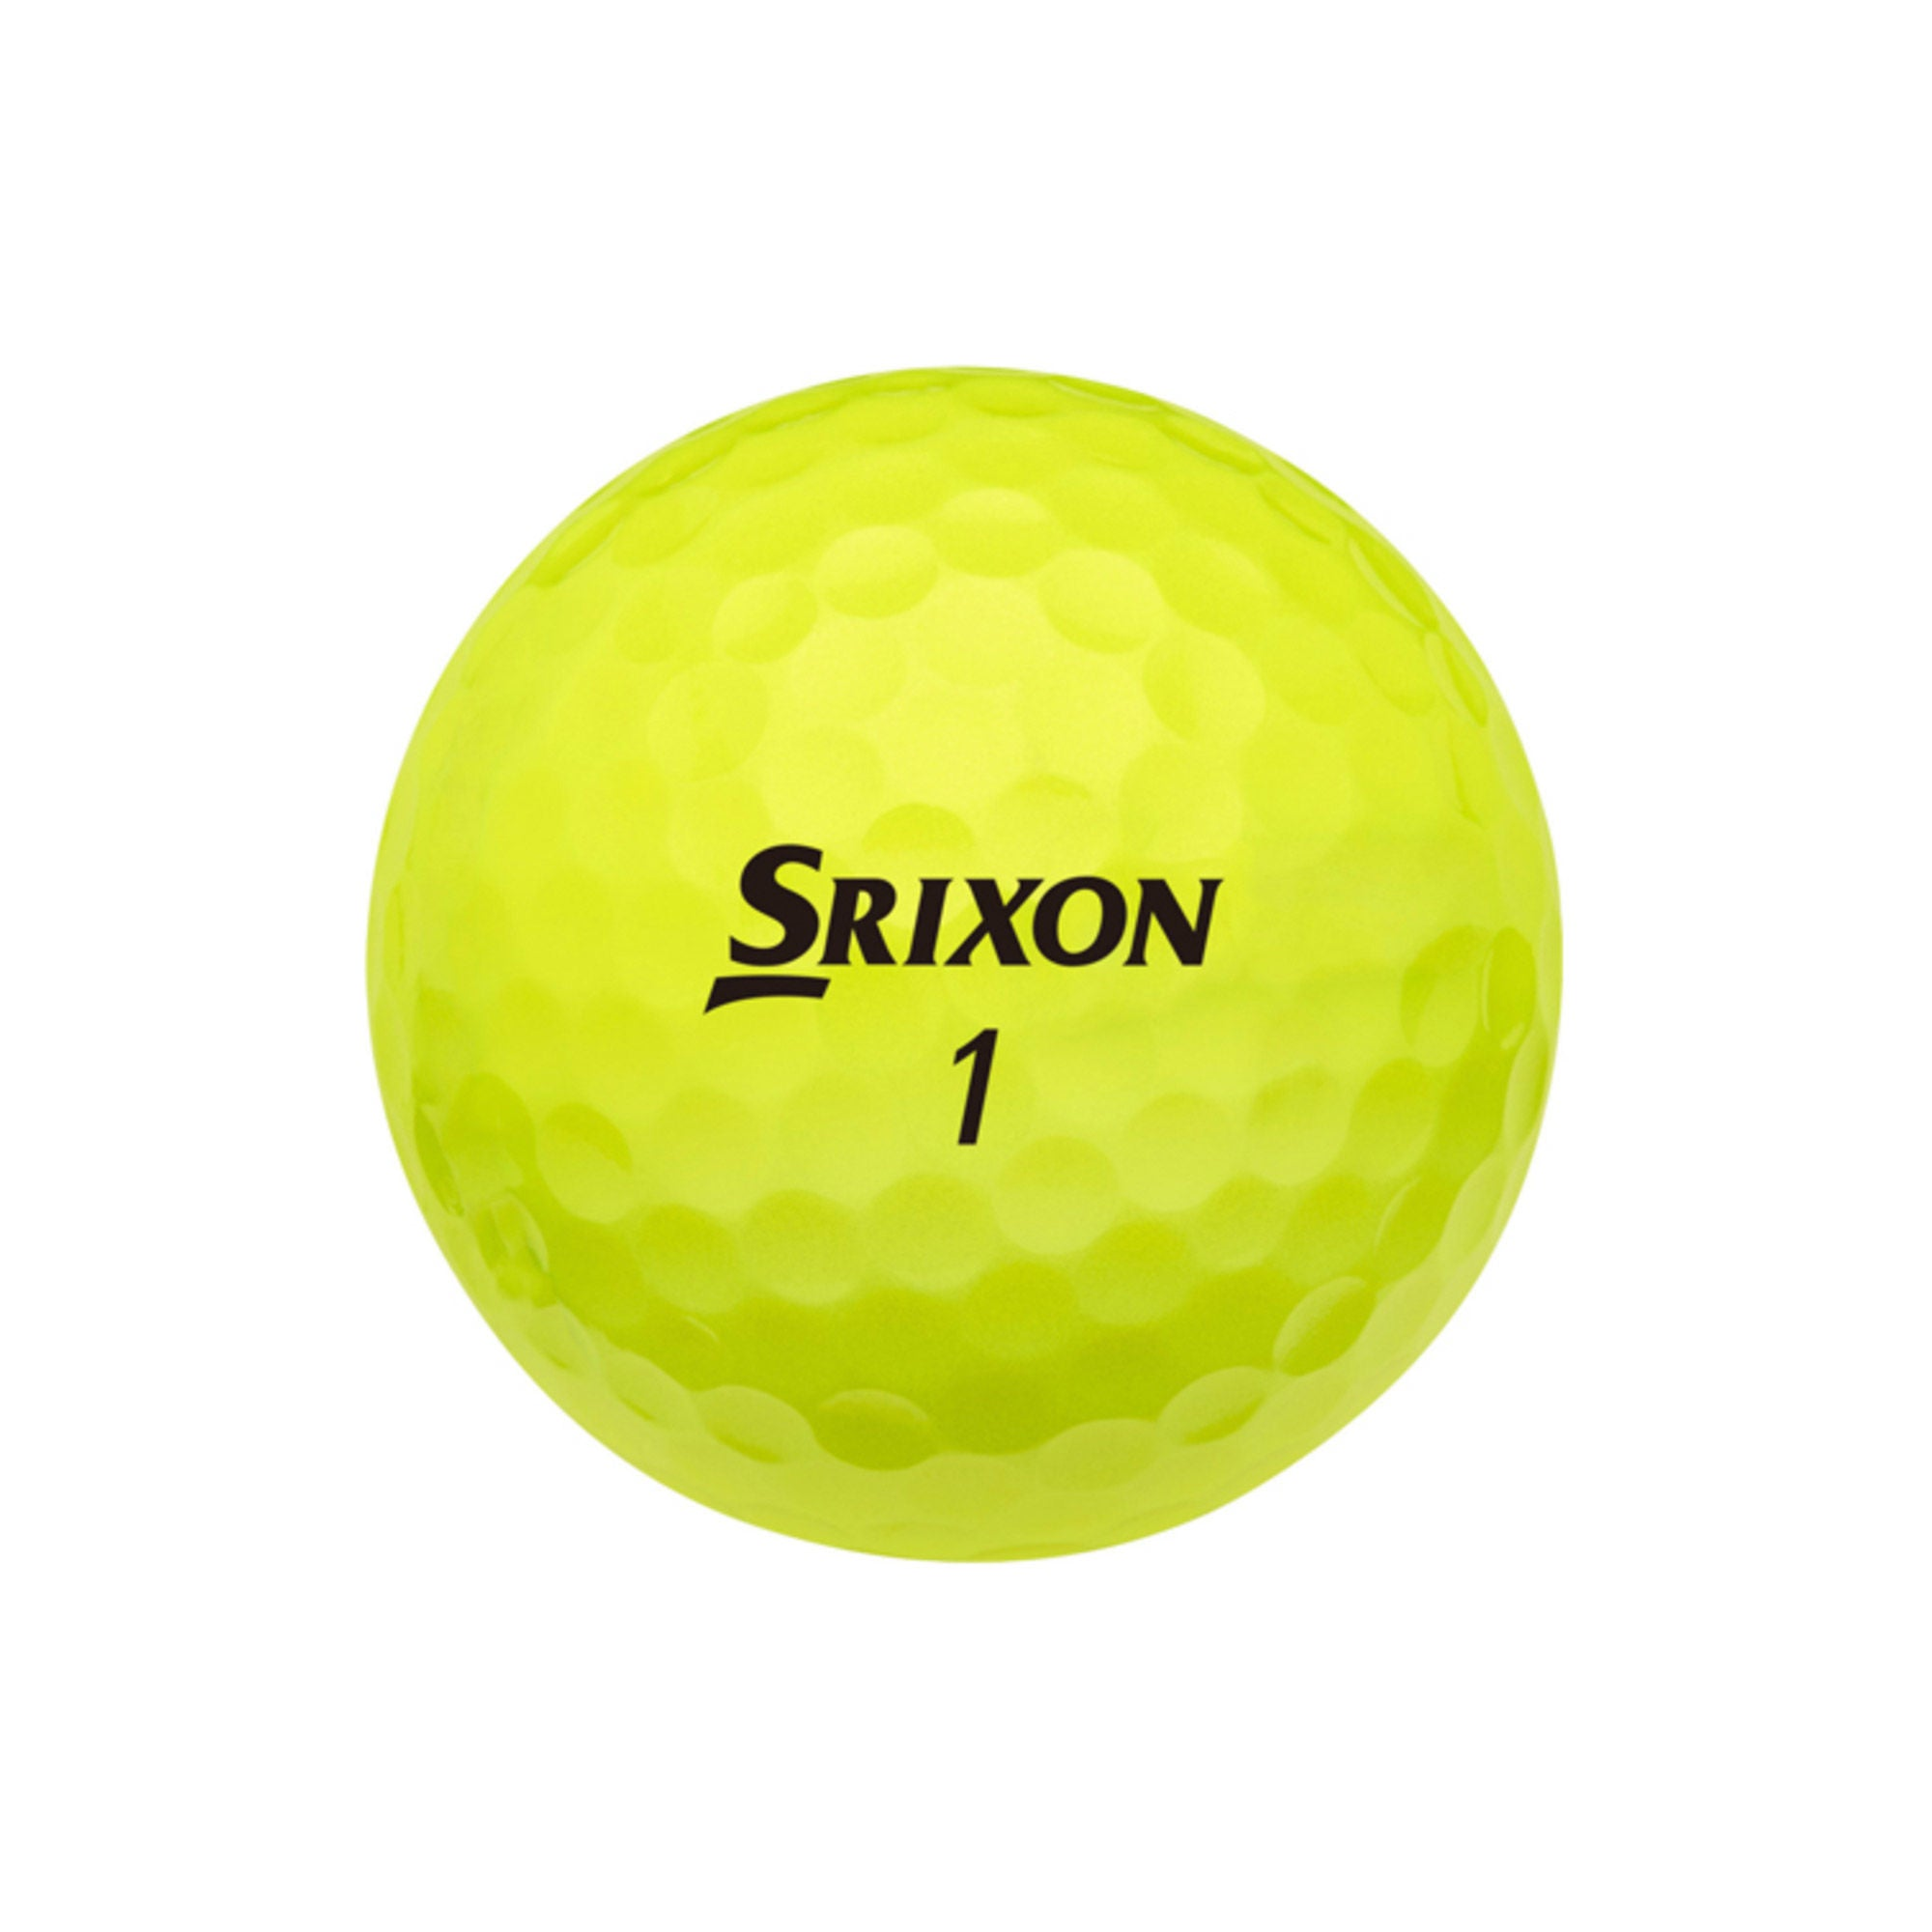 Srixon Soft 2 piece Yellow Dozen - Putterfingers.com